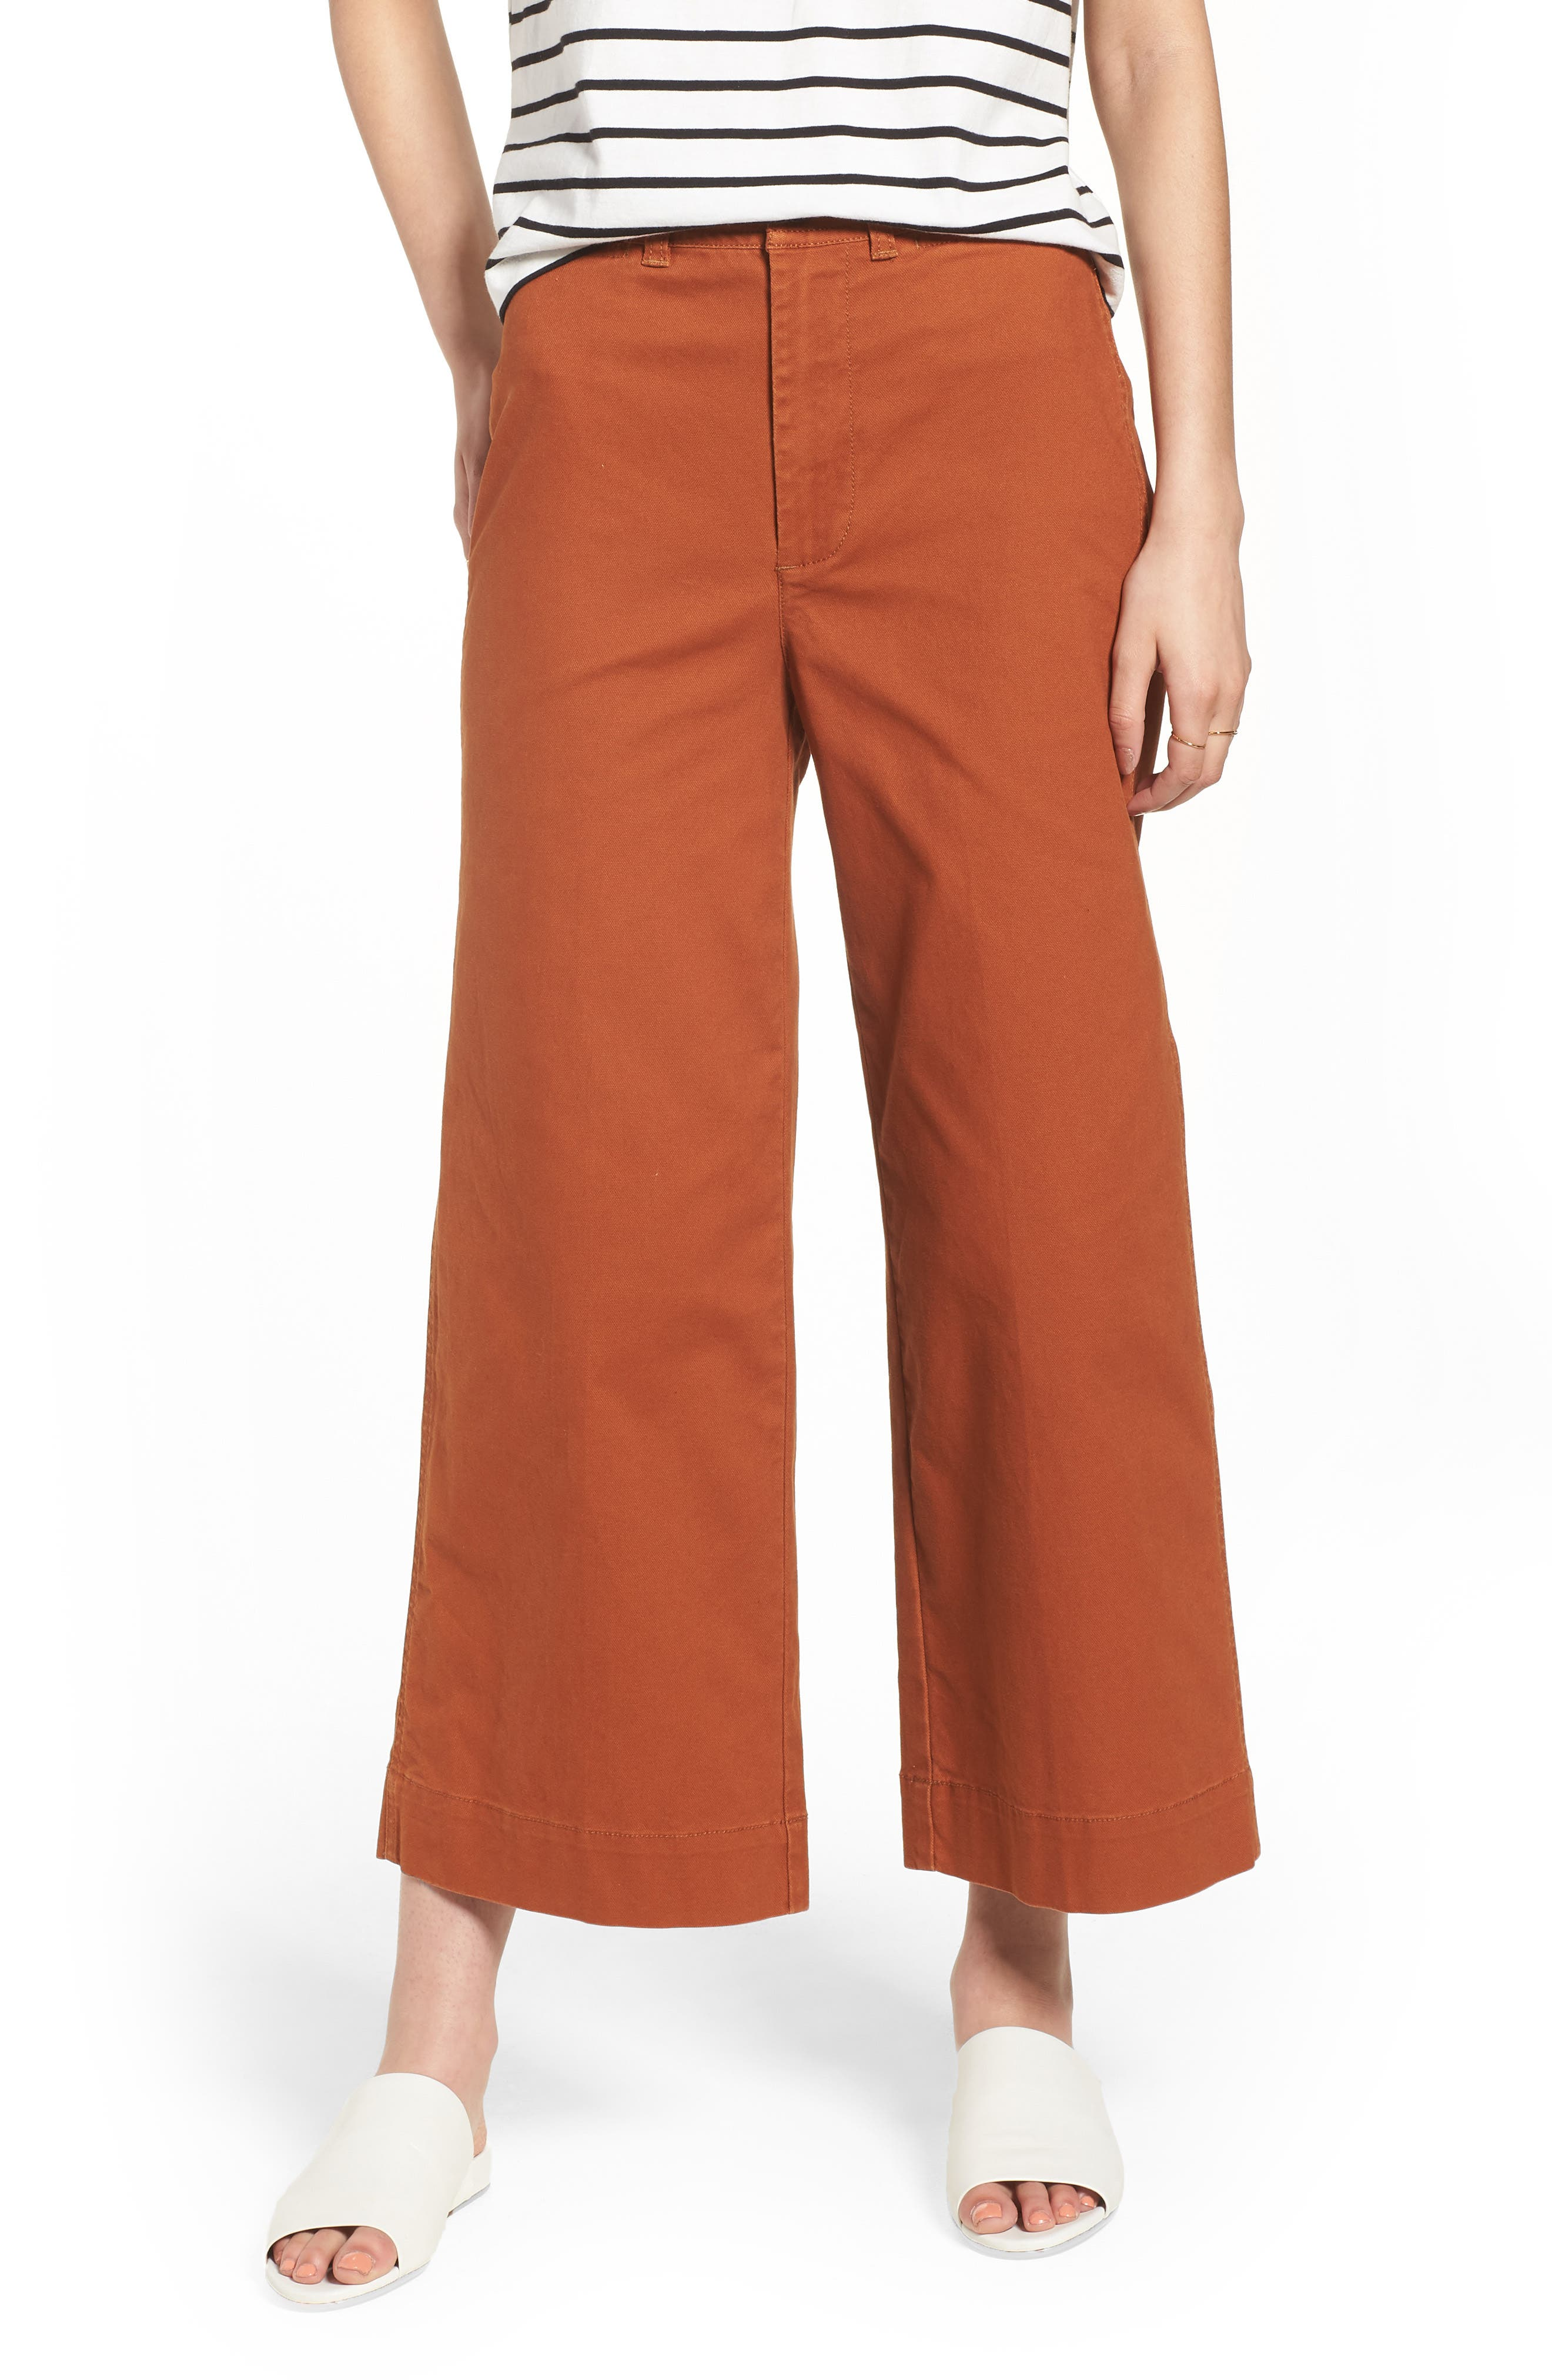 Emmett Crop Wide Leg Pants,                             Main thumbnail 1, color,